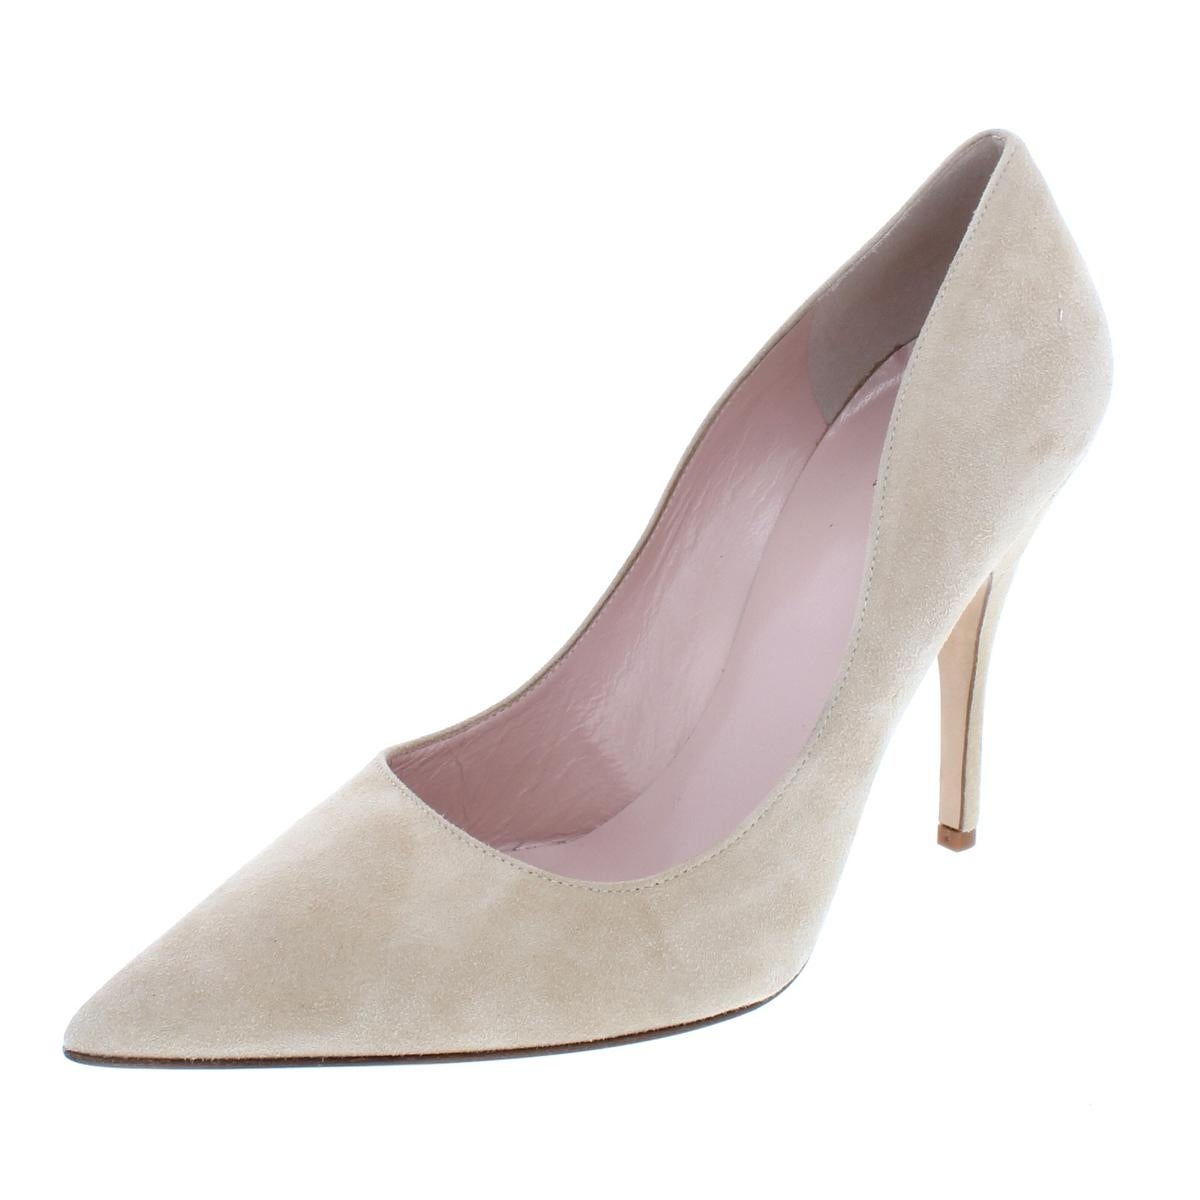 22a961dbbde0 Shop Kate Spade Womens Licorice Pumps Solid Pointed-Toe - Free Shipping  Today - Overstock.com - 14795587